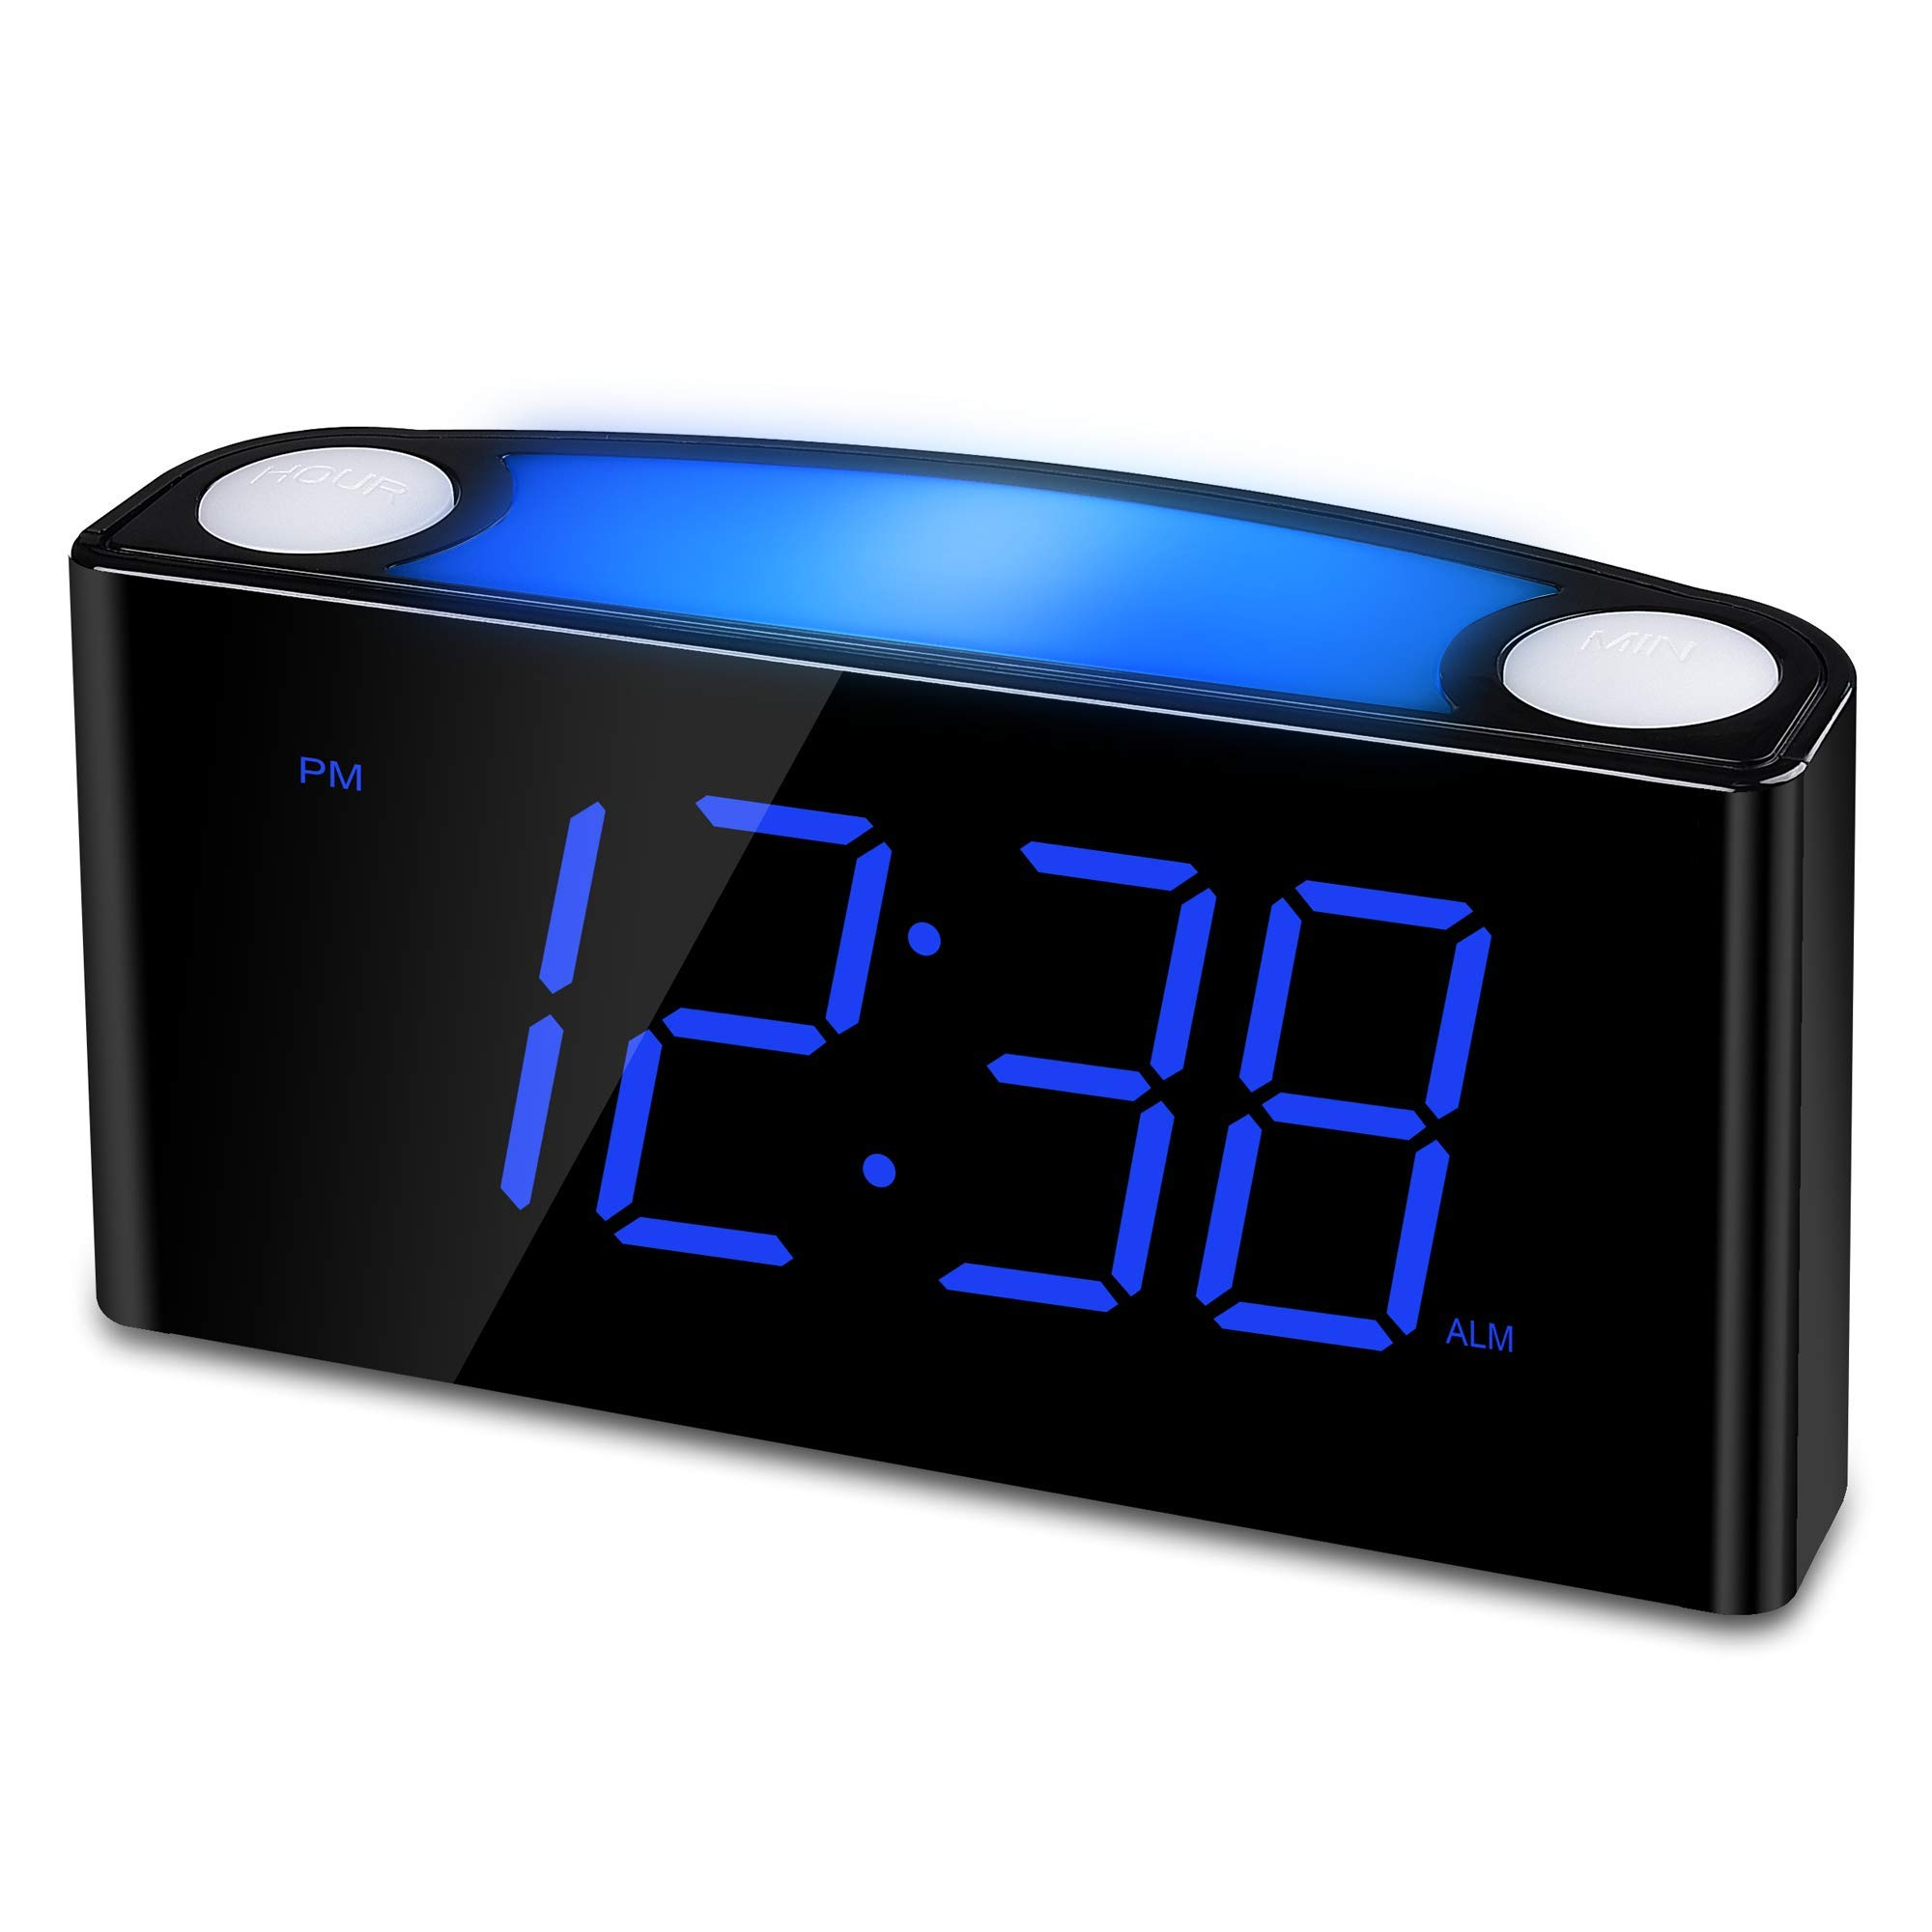 Really good basic alarm clock!